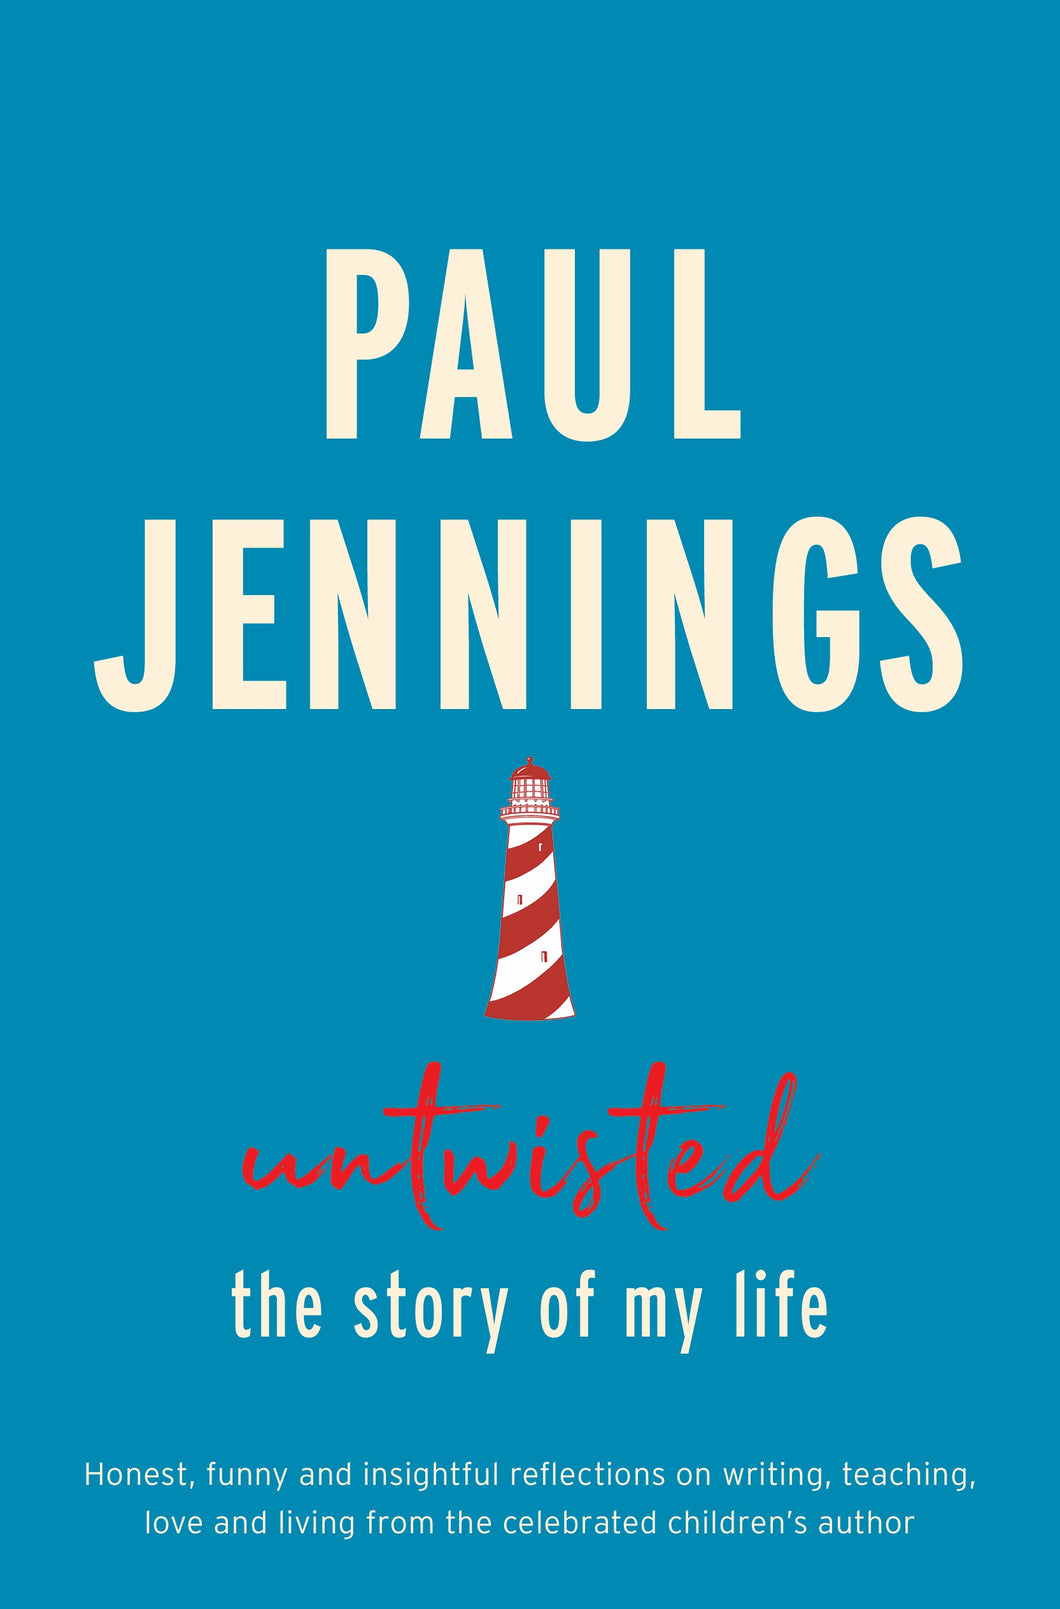 Untwisted, The Story of My Life by Paul Jennings